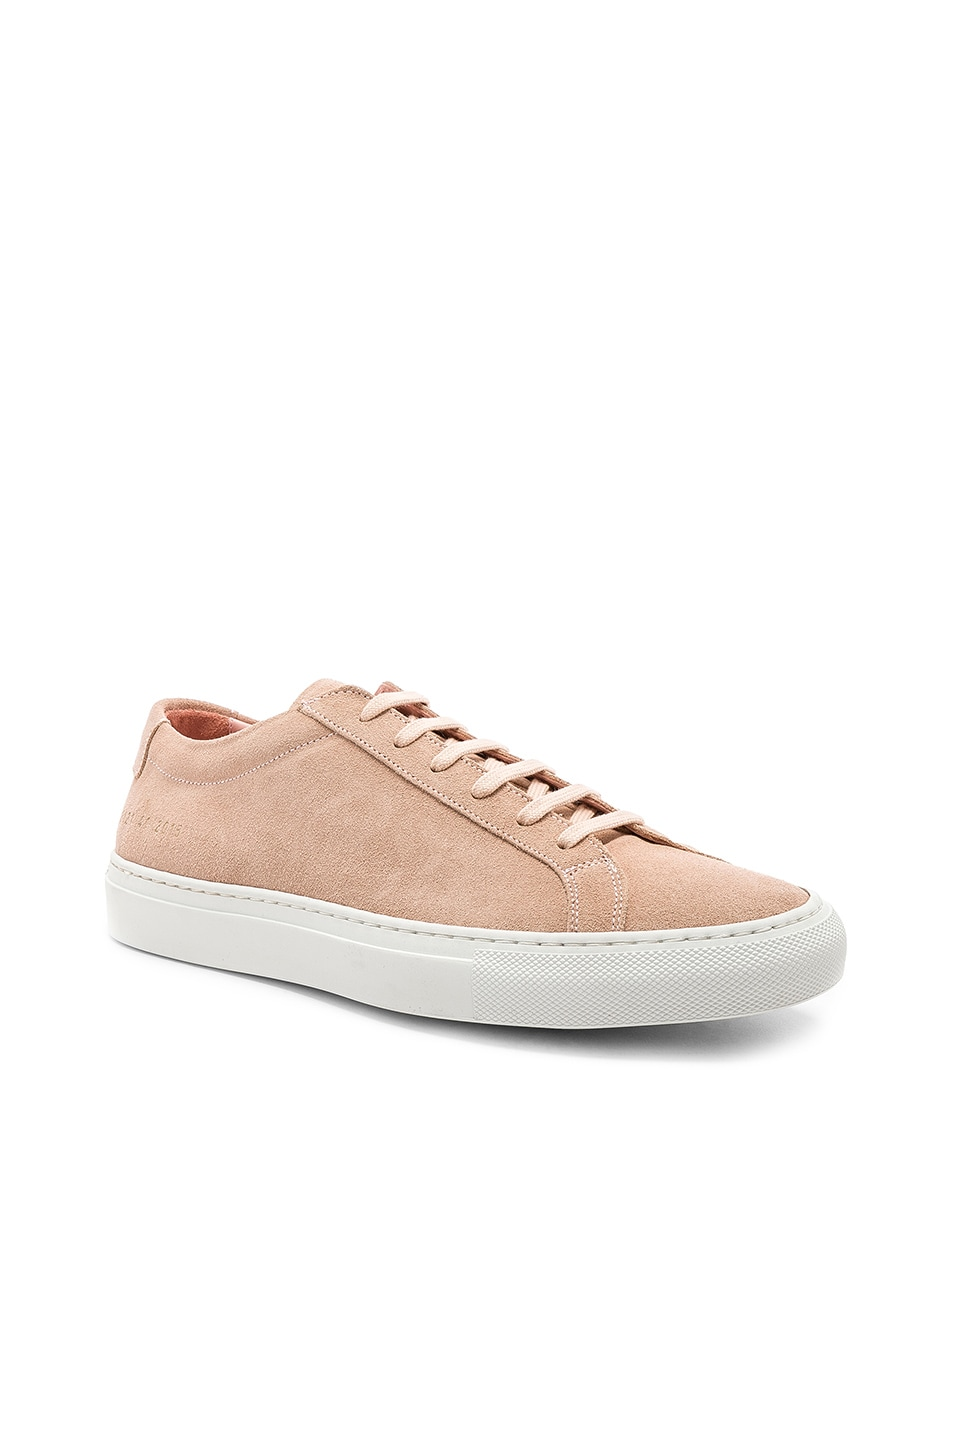 8c81f8466246 Image 1 of Common Projects Suede Original Achilles Low Suede in Blush